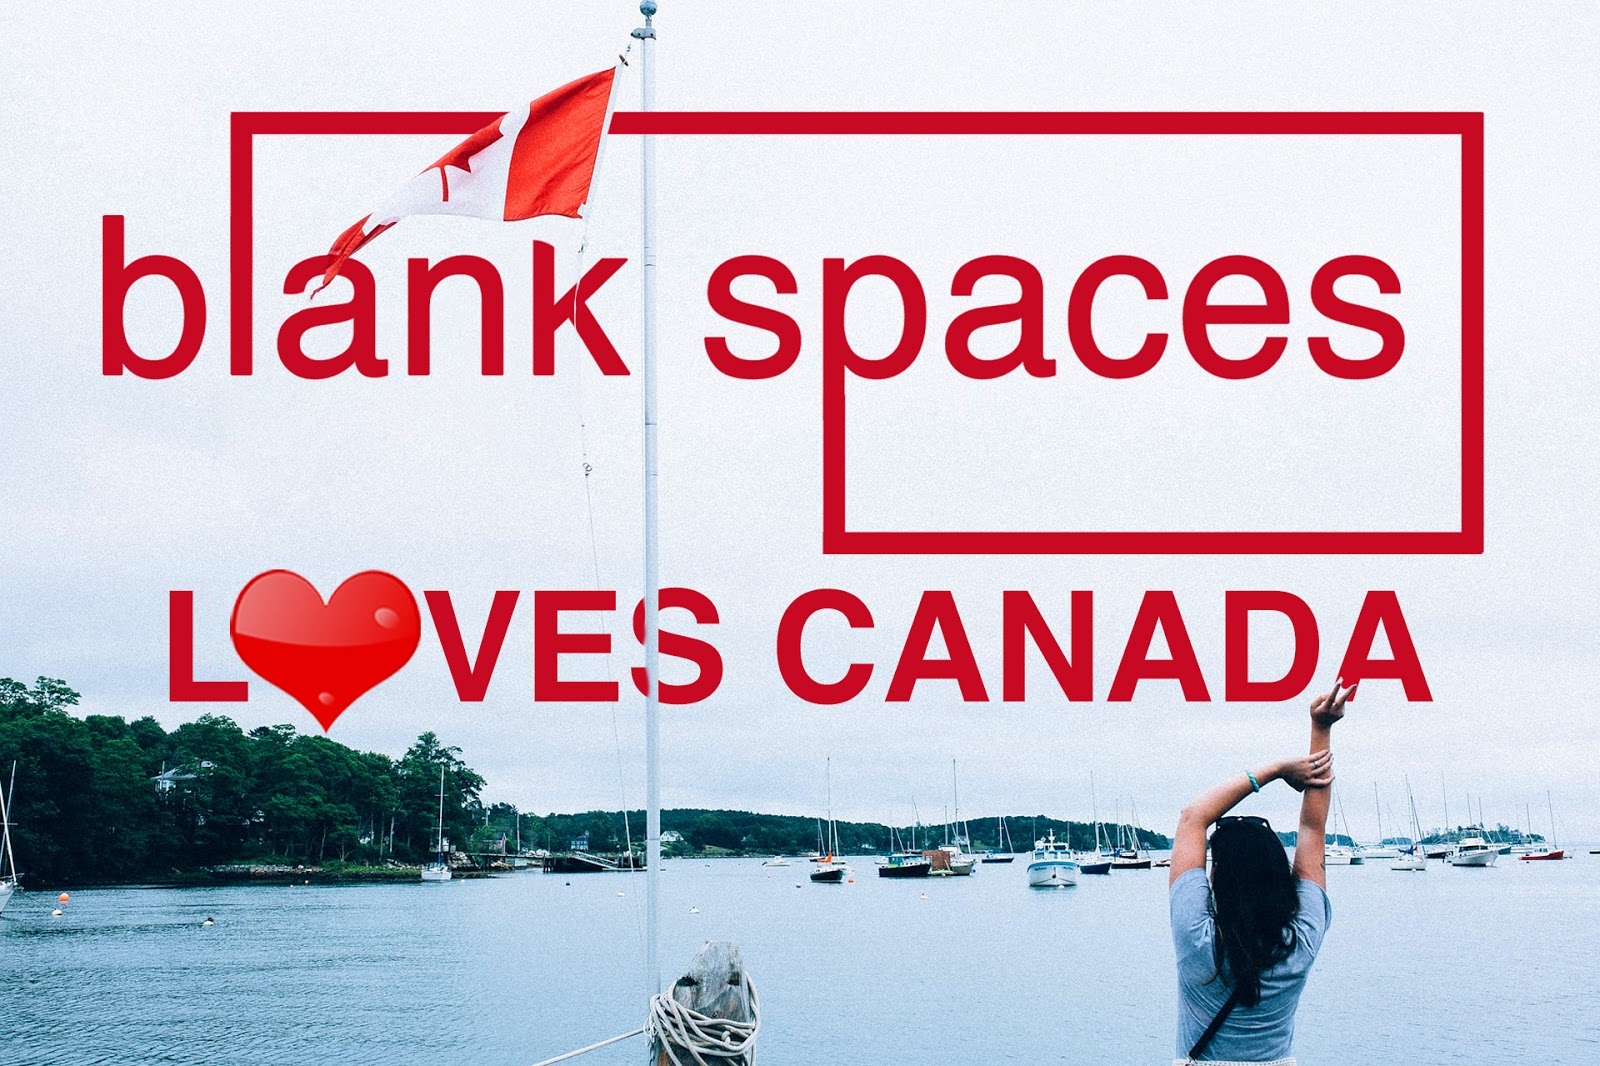 blank spaces magazine loves Canada